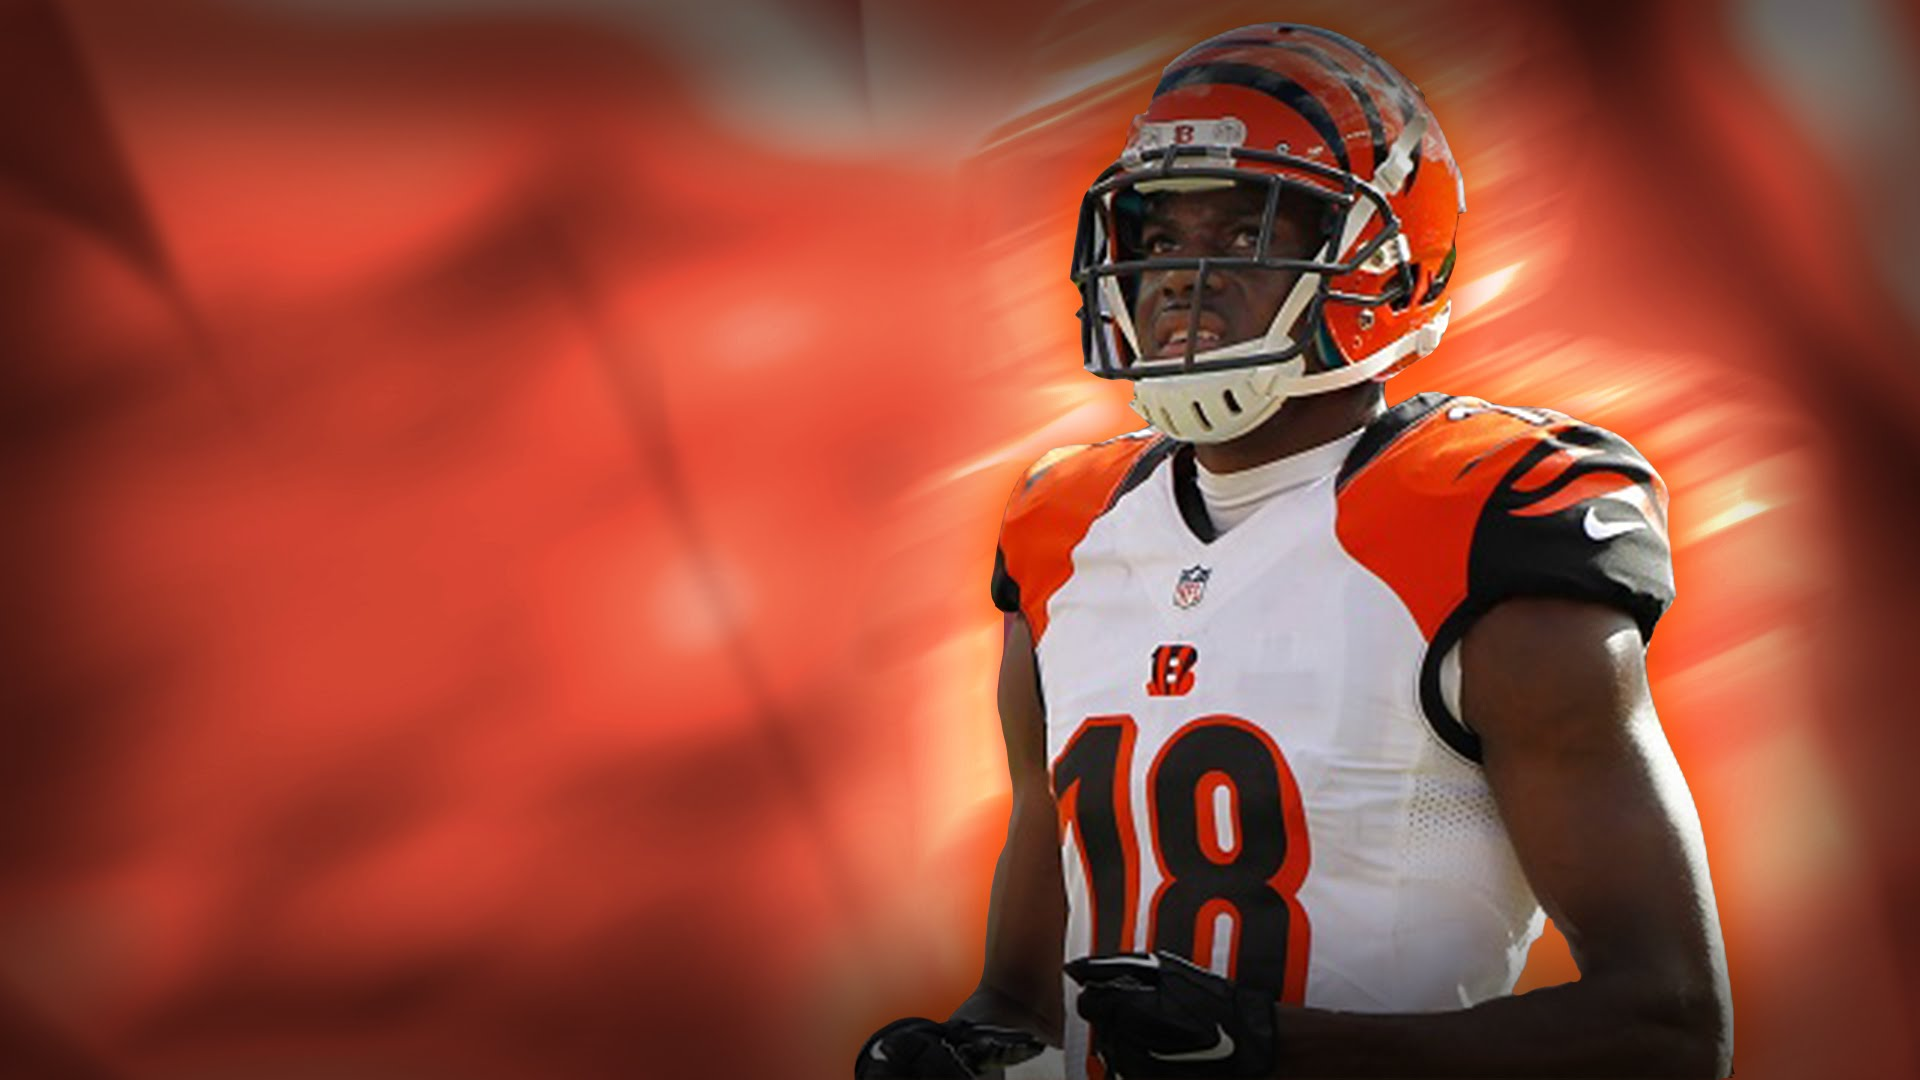 Wallpaperwiki Aj Green Backgrounds For Desktop PIC WPC0013911